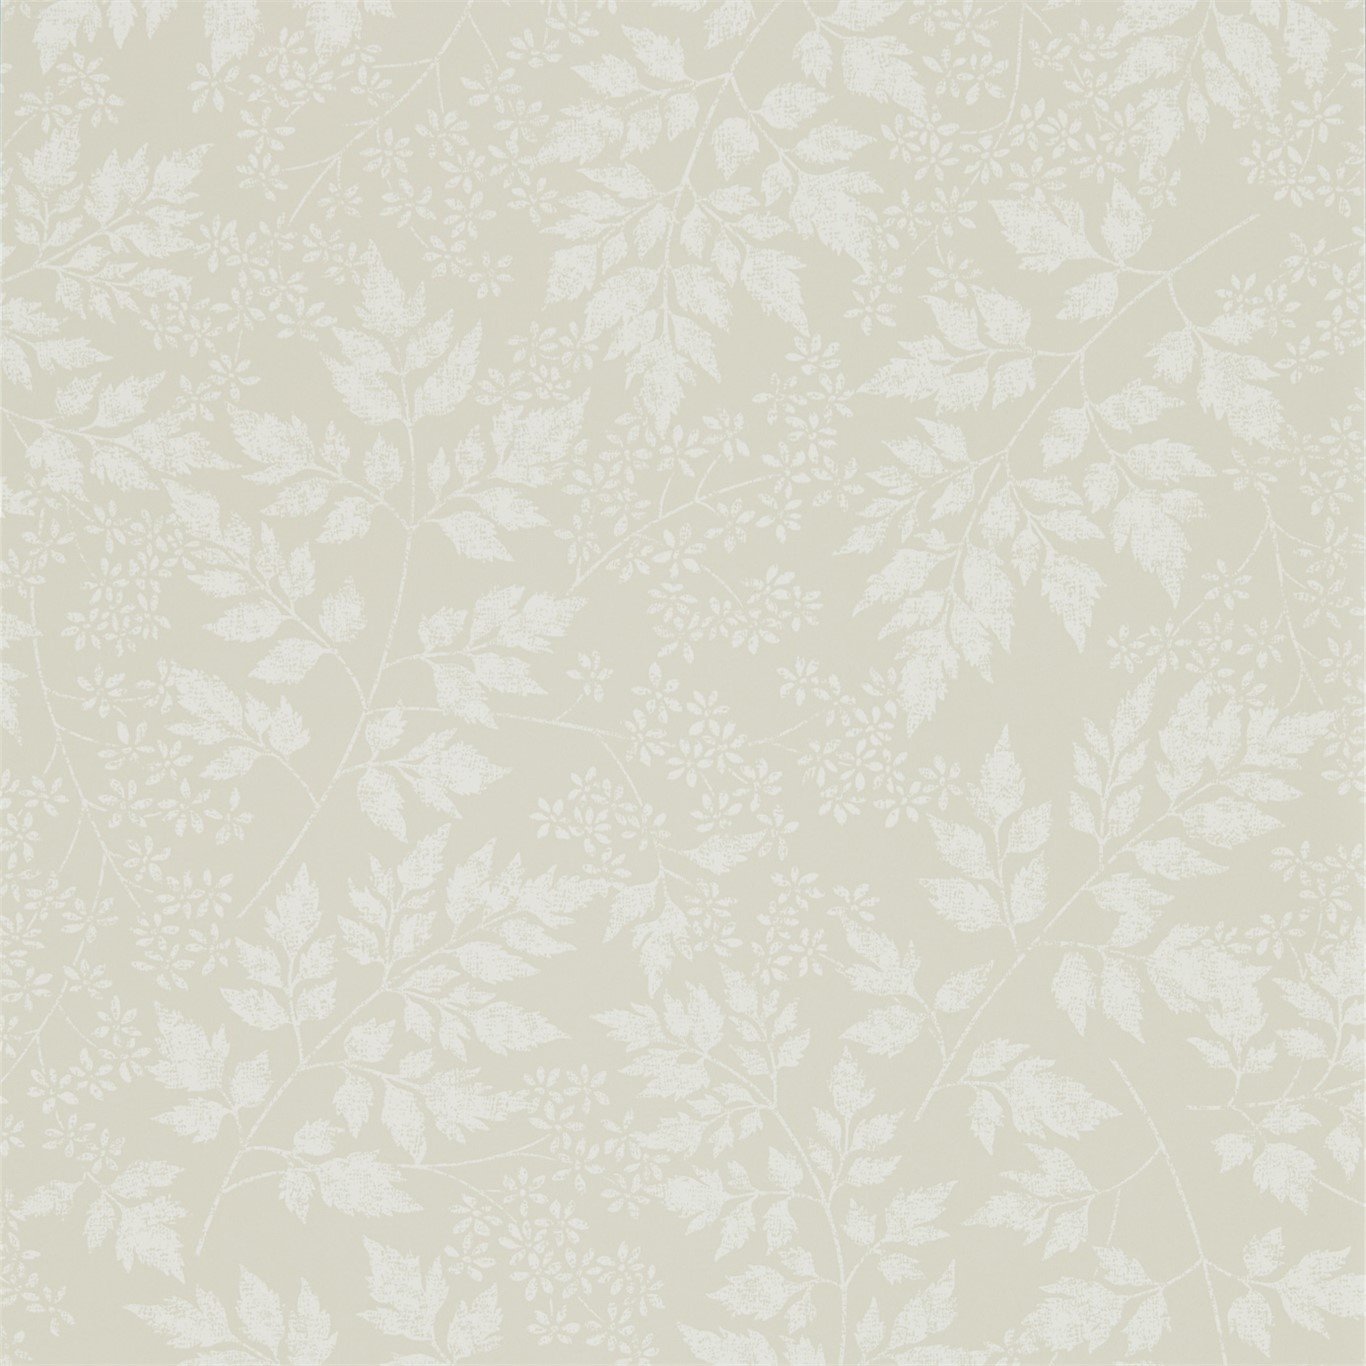 Image of Sanderson Home Spring Leaves Barley Wallpaper 216374